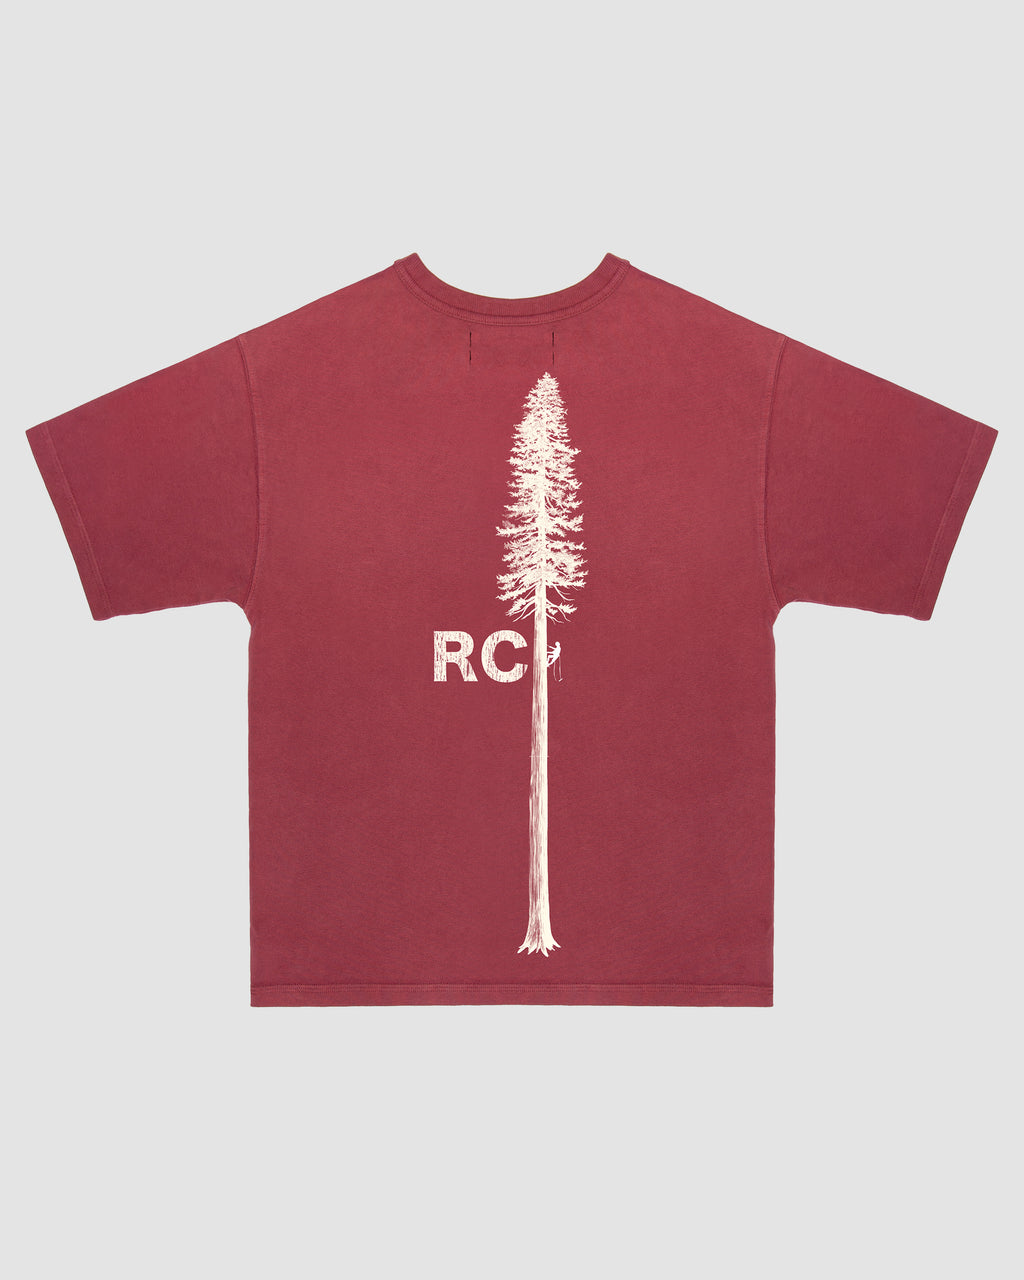 RCI Timberyard Tee Shirt in Red